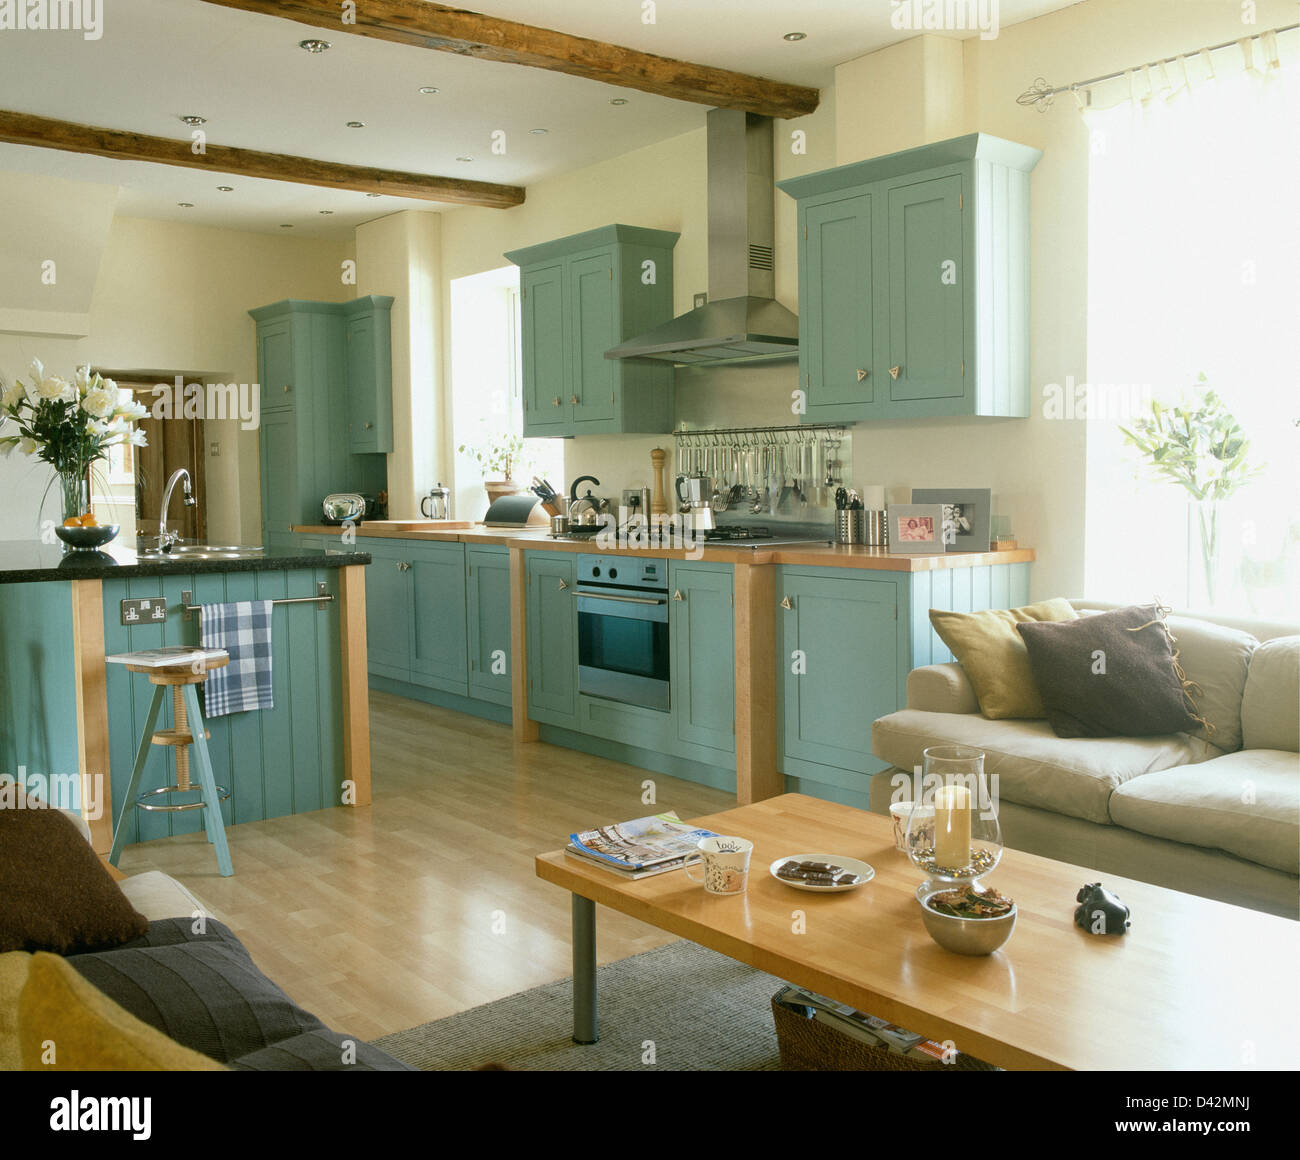 Pale Blue Fitted Units In Country Kitchen With Pale Wood